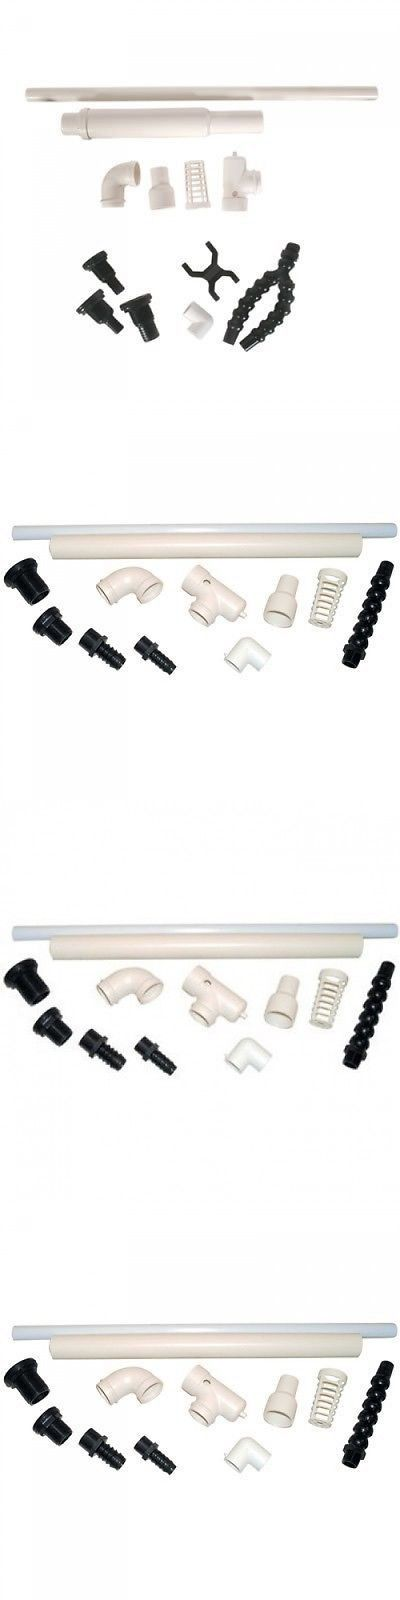 Tubing and Valves 177800: All Glass Aquariums All Glass Aquarium Aag29251 Overflow Accessory New Kit BUY IT NOW ONLY: $74.5